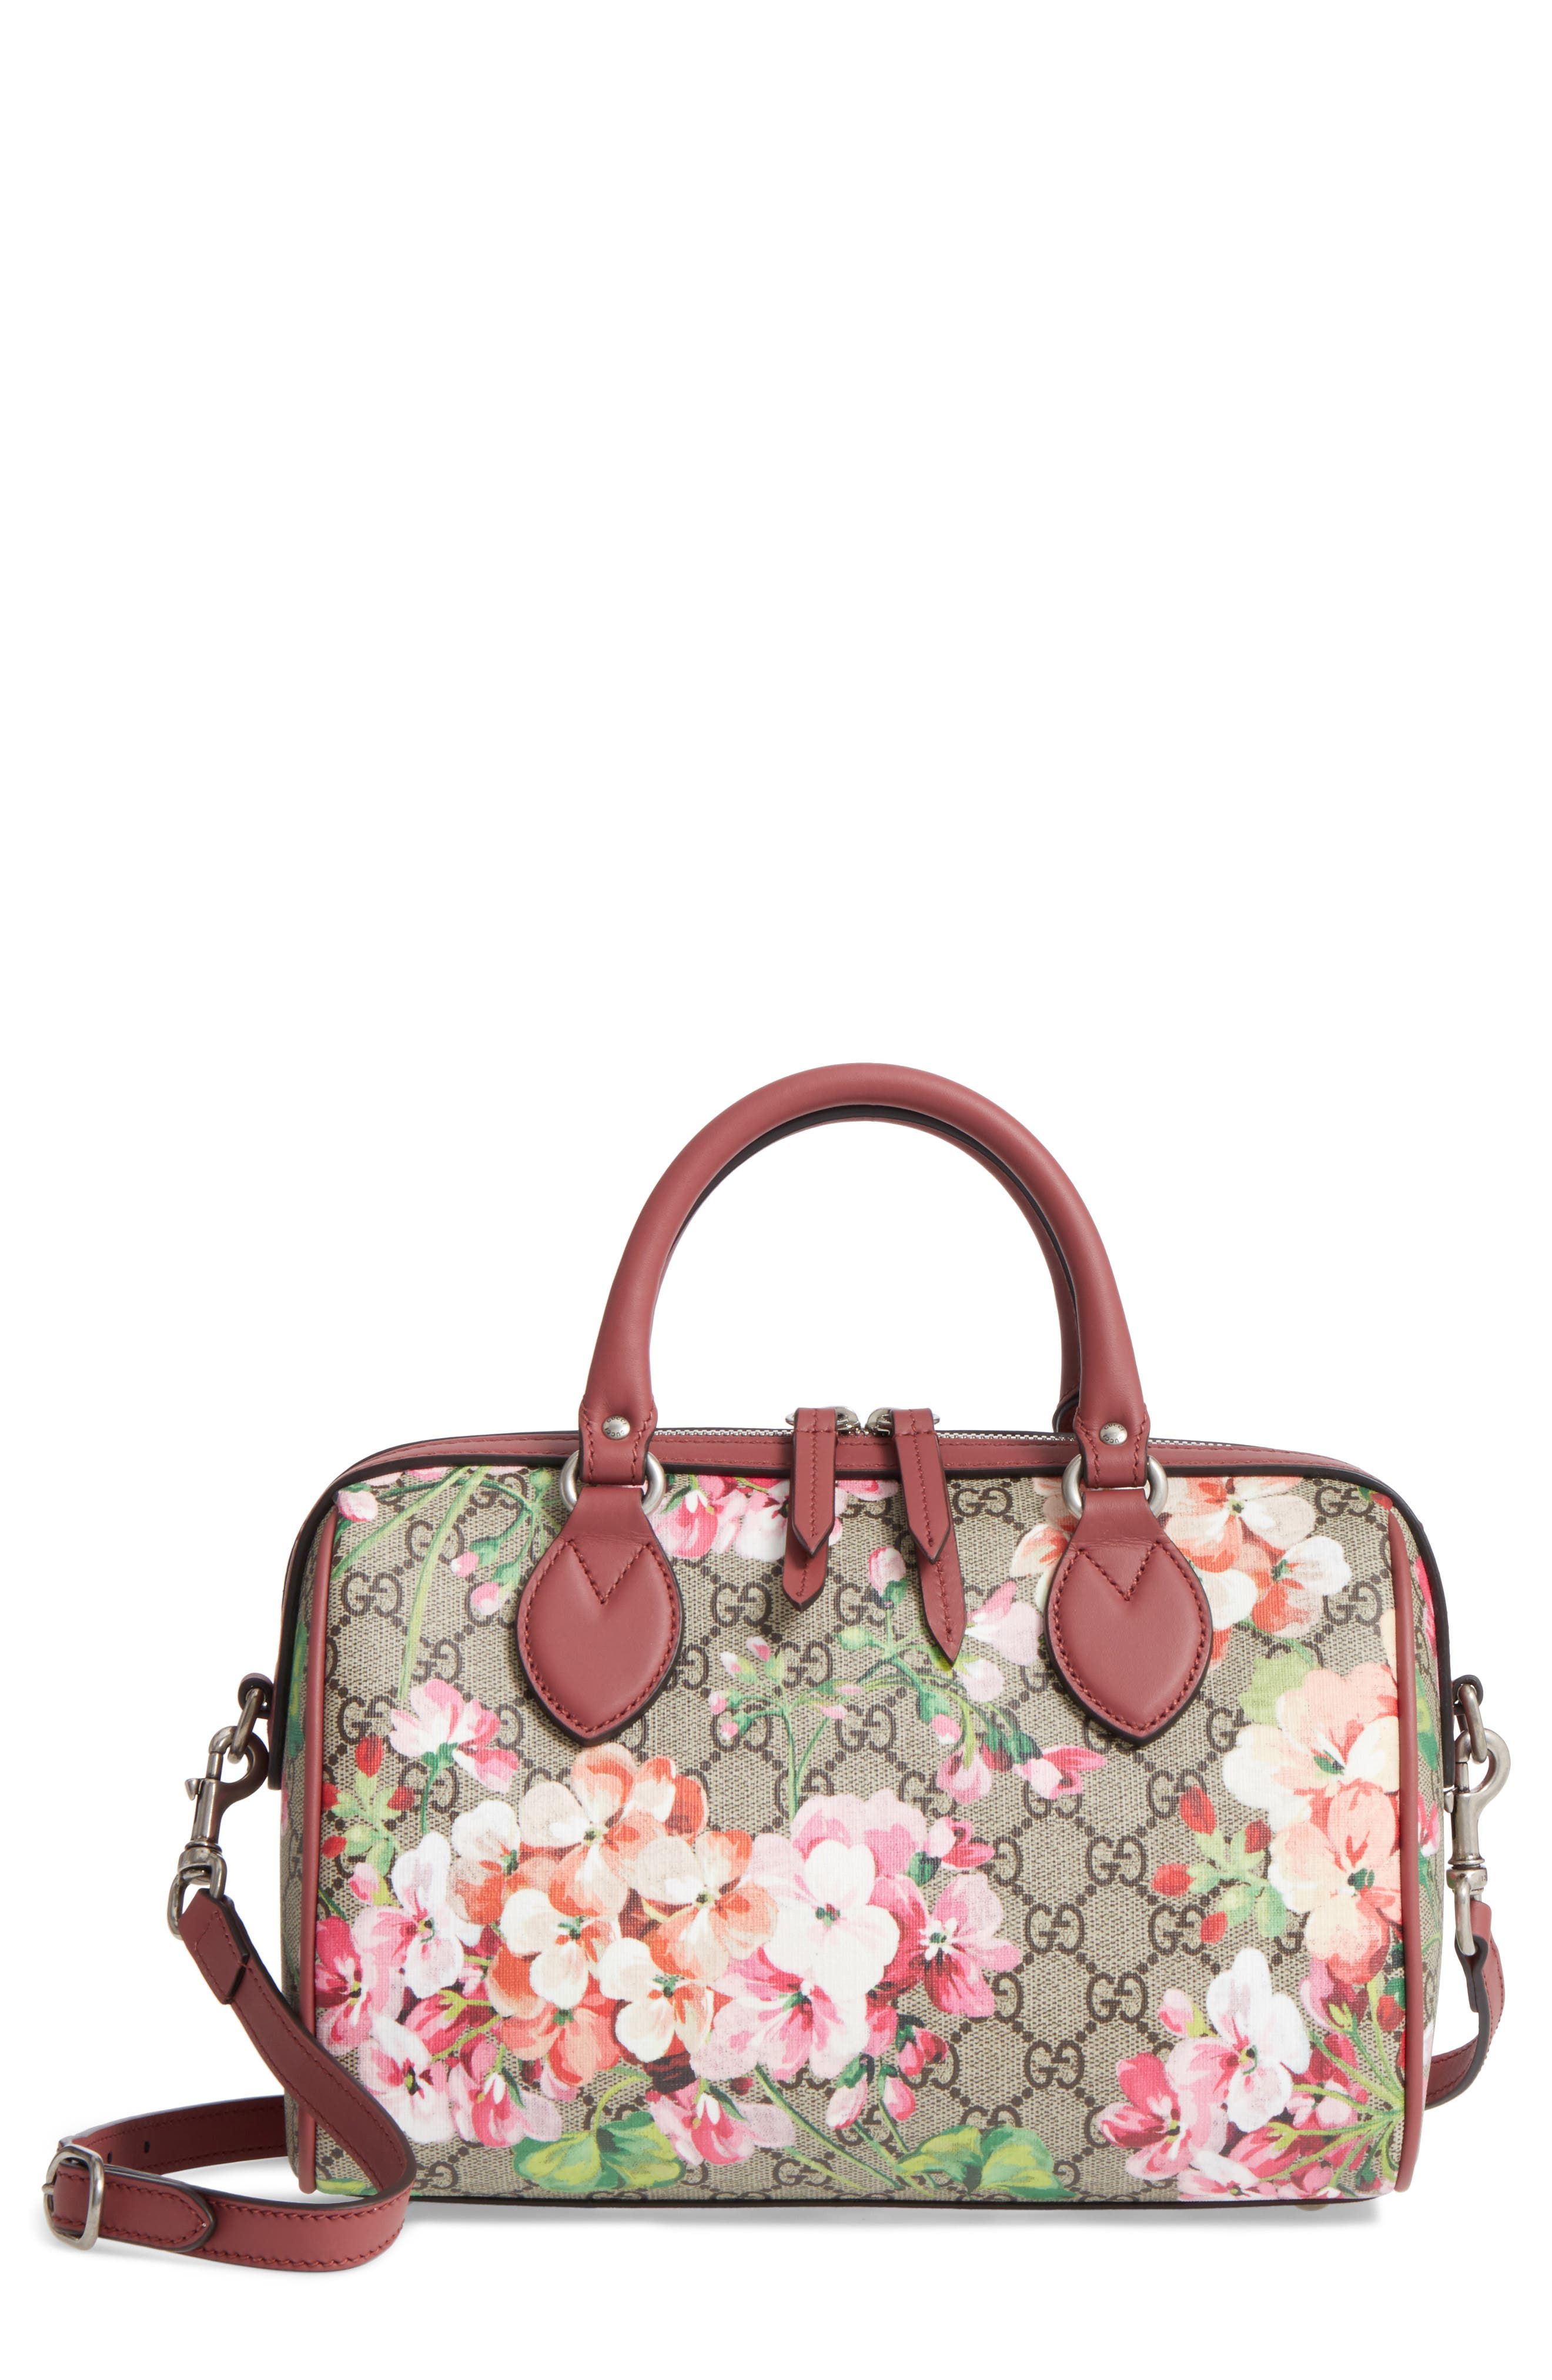 Small Blooms Top Handle GG Supreme Canvas Bag,                             Main thumbnail 1, color,                             Multi/Dry Rose